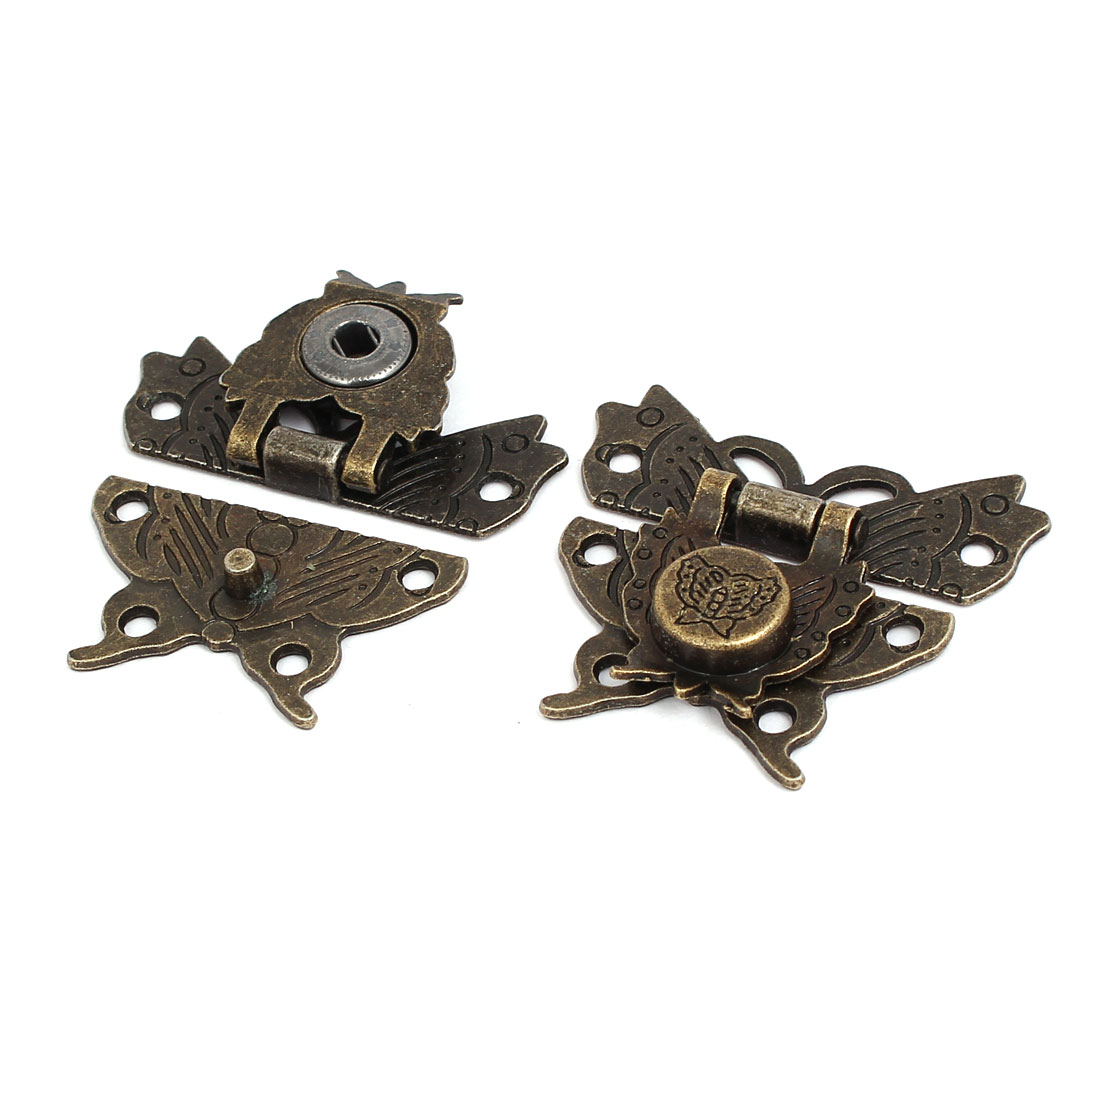 Wooden Box Case Butterfly Design Latches Hasps Locks Bronze Tone 50x45x8mm 2pcs